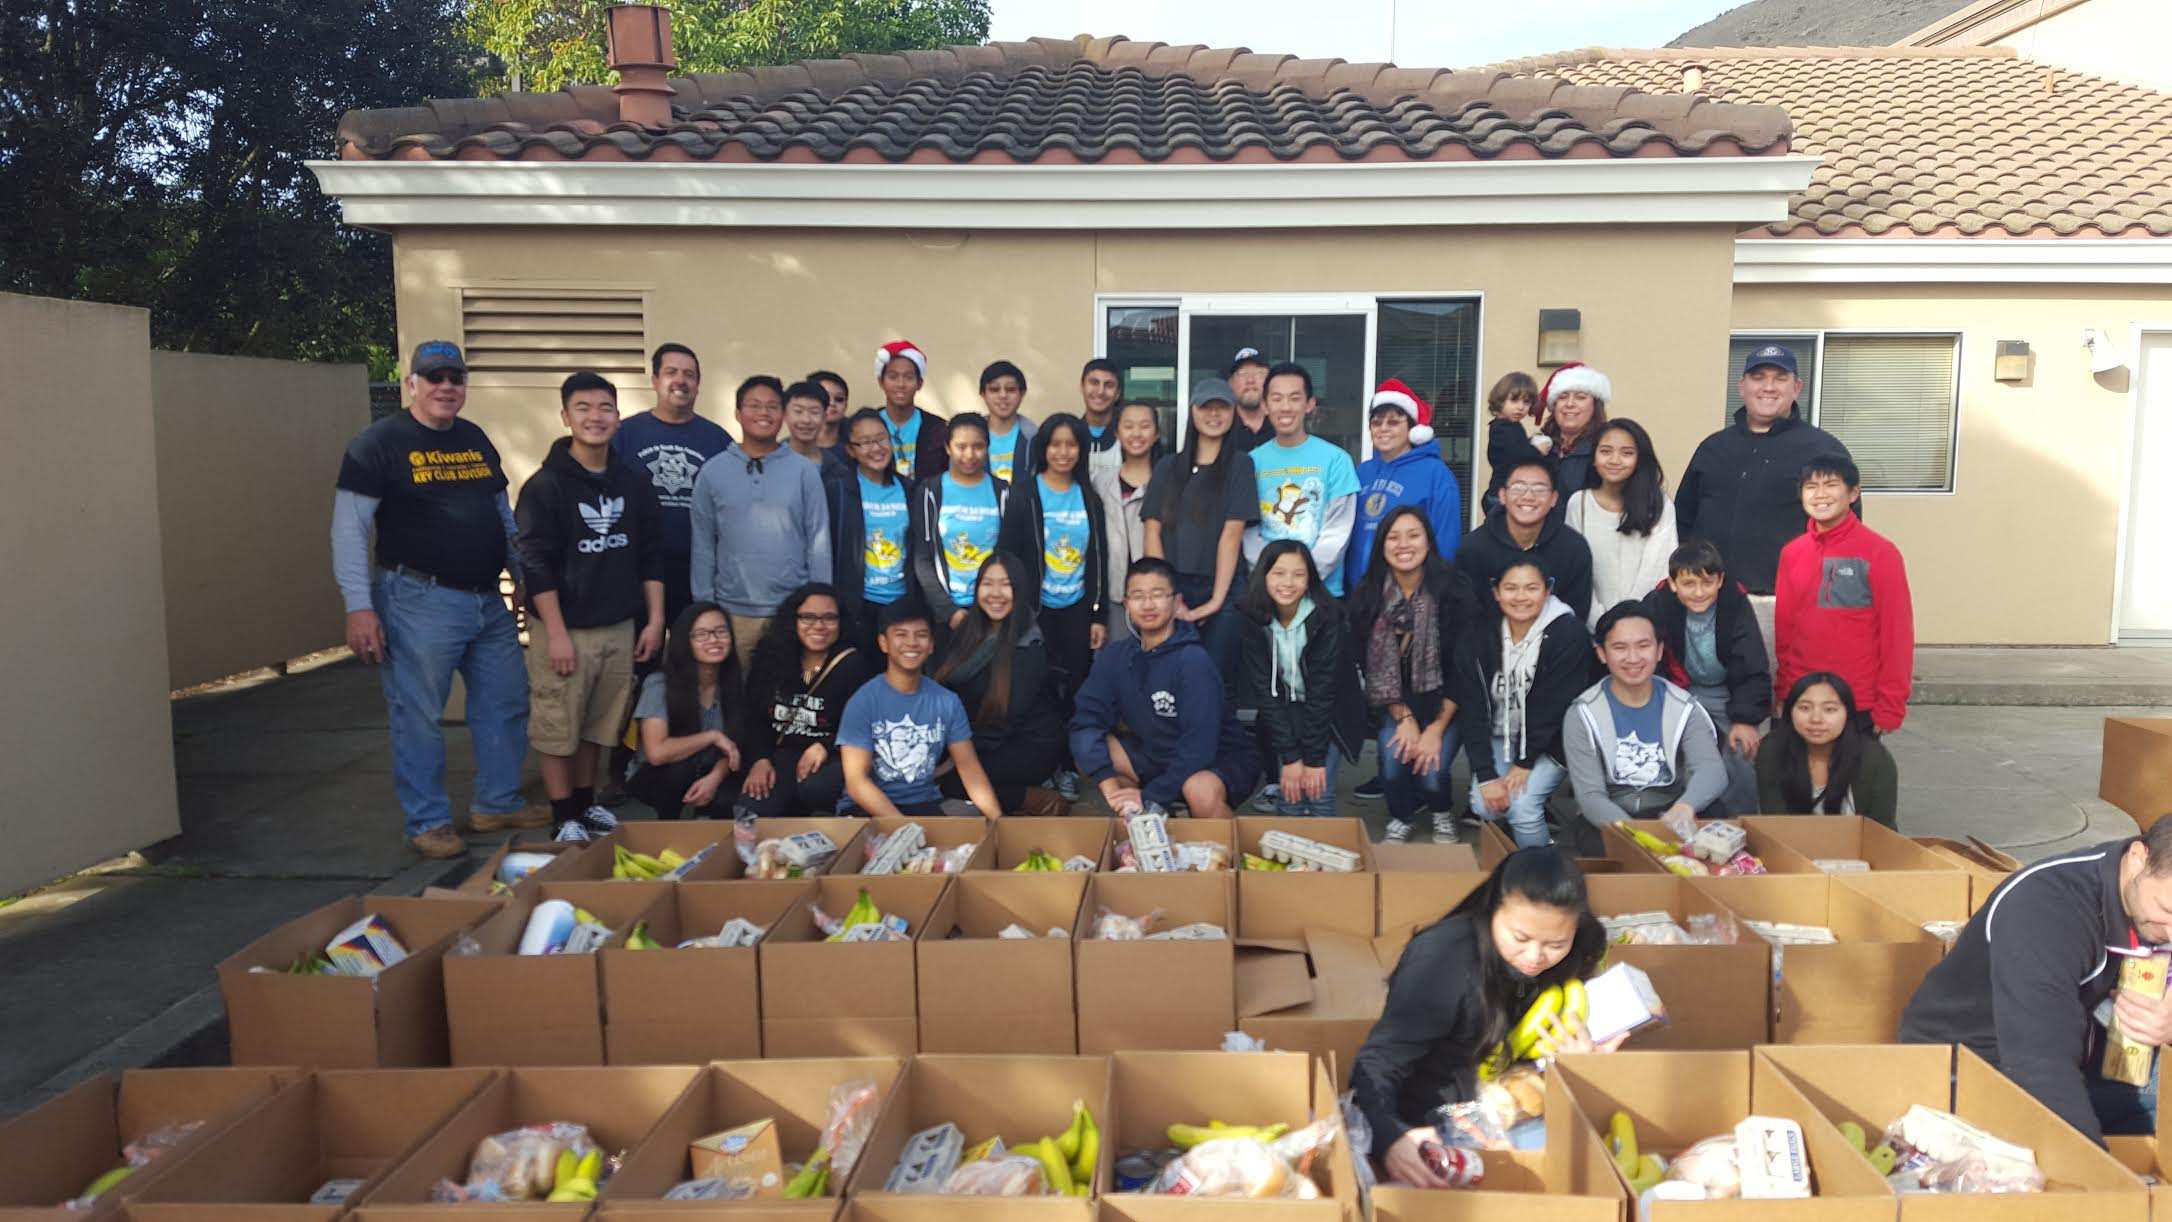 Kiwanis, Key Club, Circle K, and community volunteers helped pack holiday food boxes for the annual Louis P. Guaraldi Food Basket Program in December 2015 at SSF Fire Station 65. Photo Credit: Lisa DeMattei